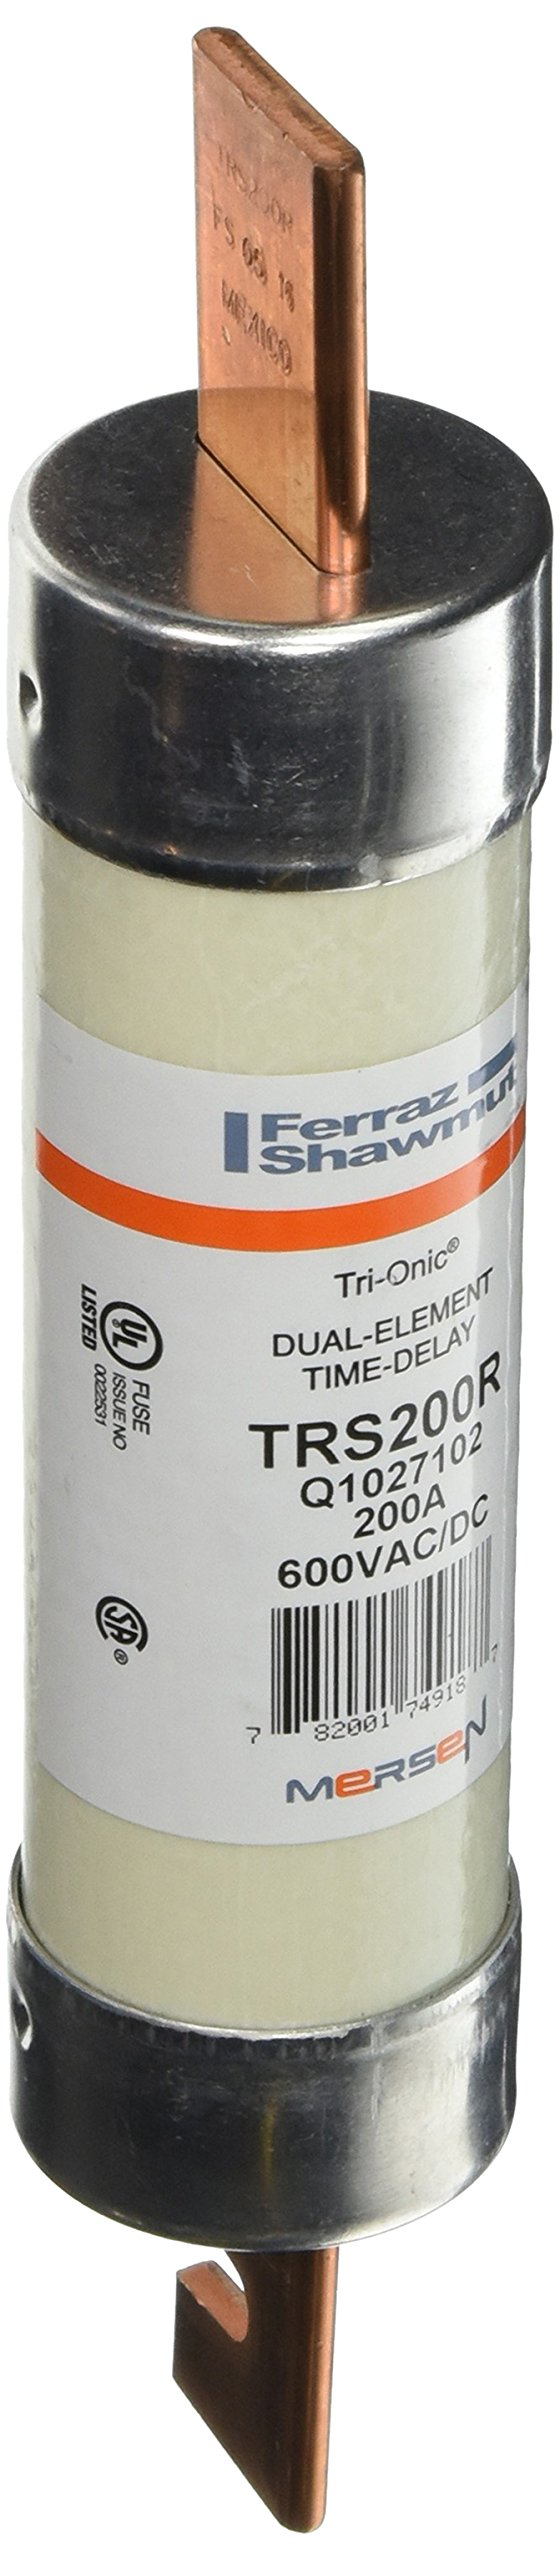 Mersen TRS200R 600V 200A 9 5/8X1 13/16 Time Delay by Mersen